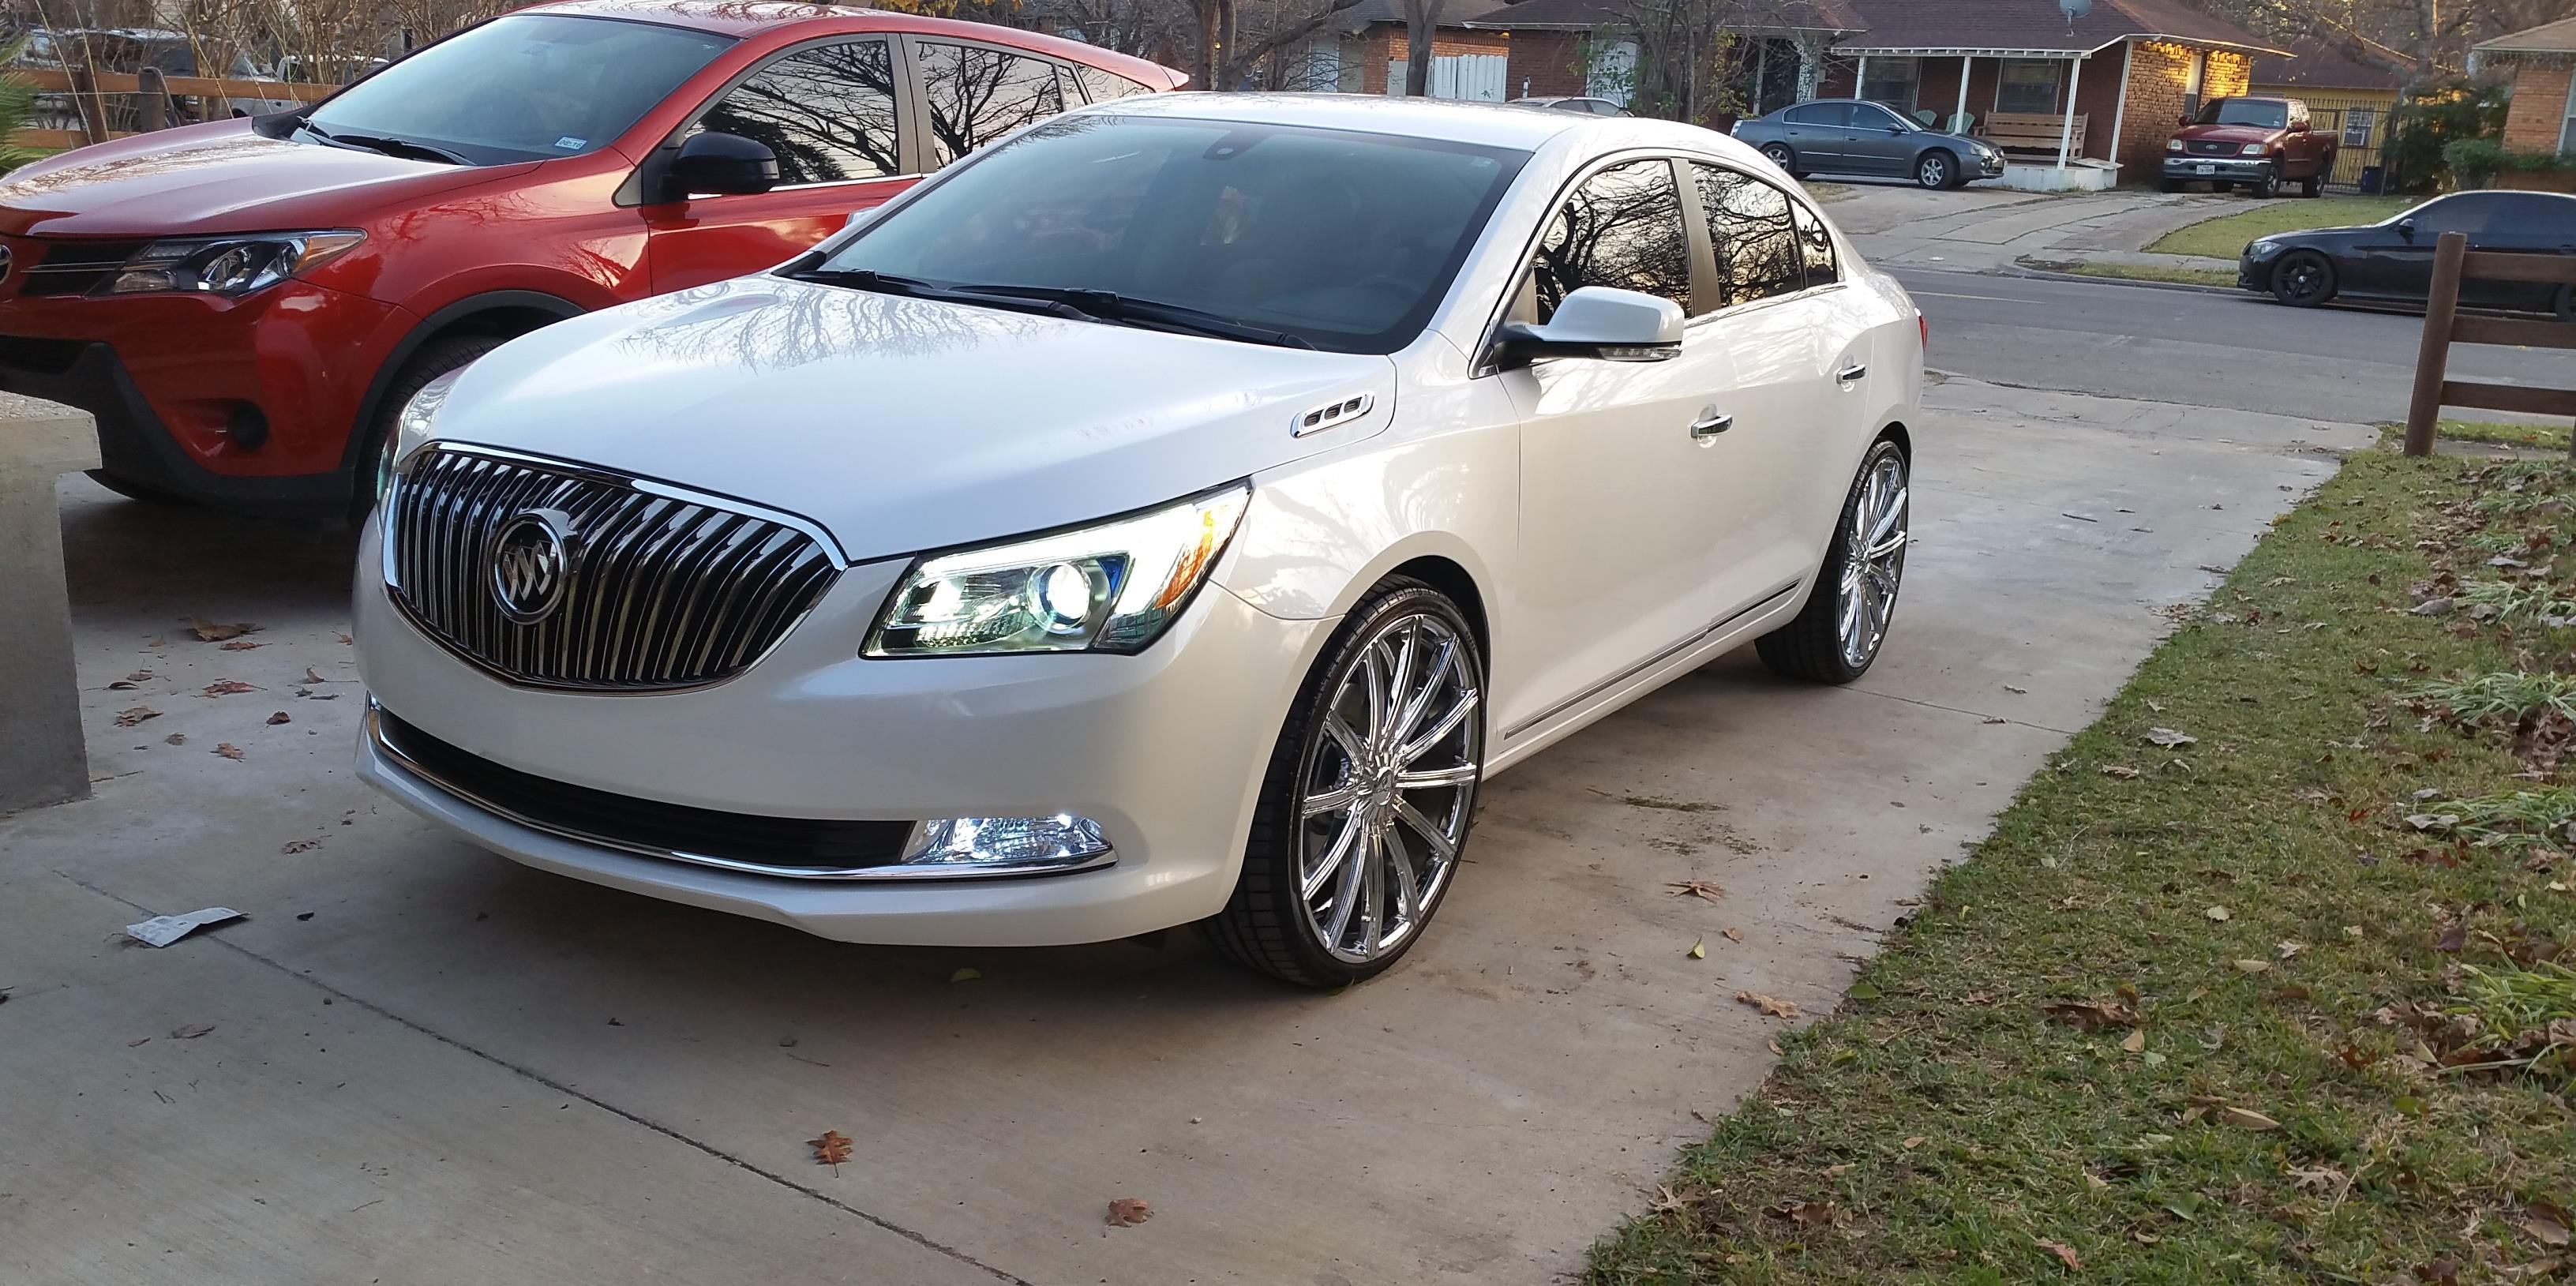 07sierradenali 2016 buick lacrosse specs photos modification info at cardomain. Black Bedroom Furniture Sets. Home Design Ideas